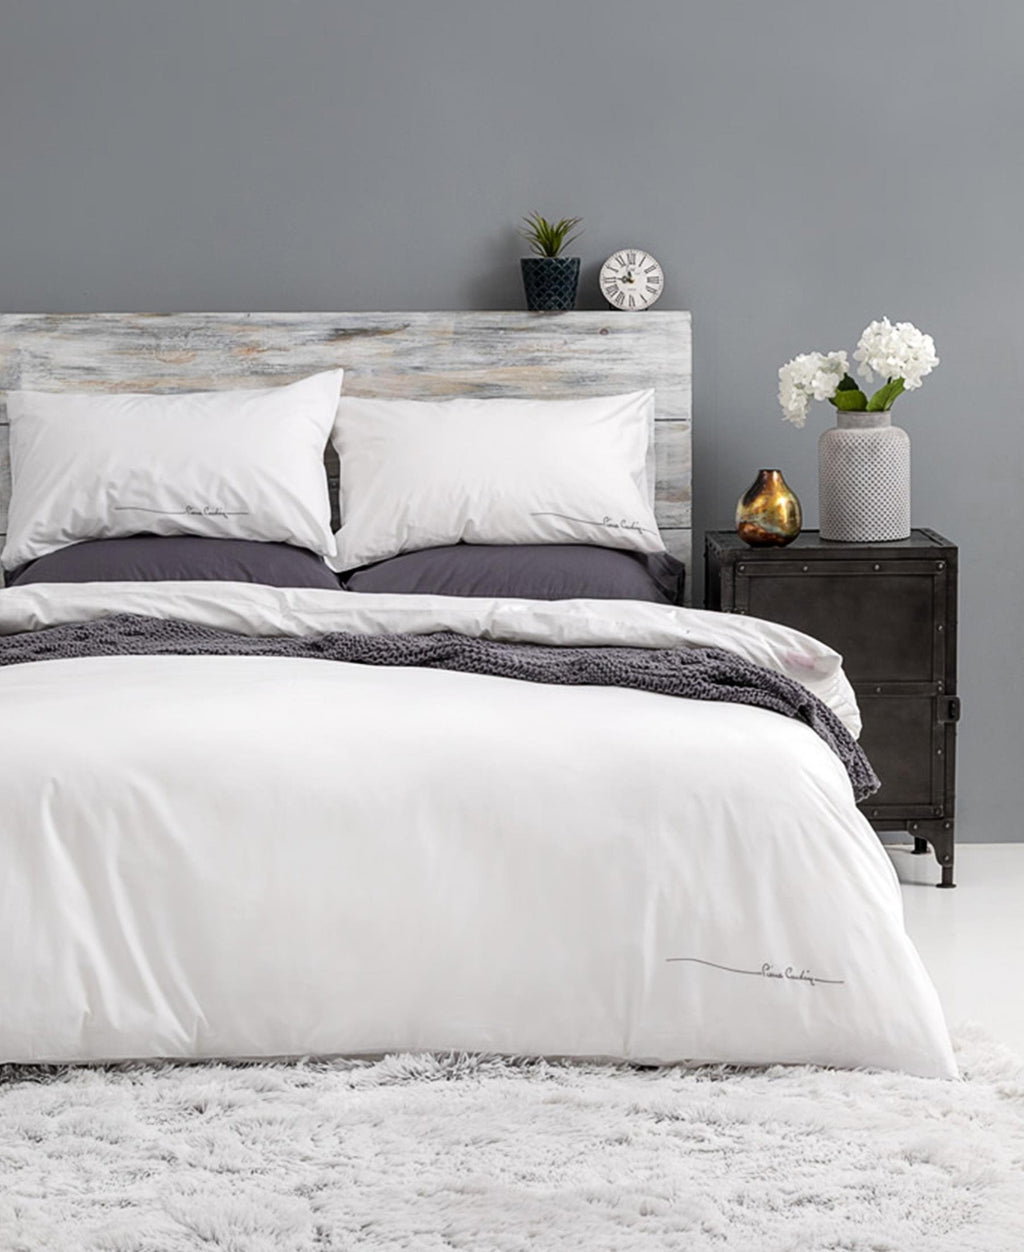 Pierre Cardin 180 Thread Count Lifestyle Duvet Cover - Lily